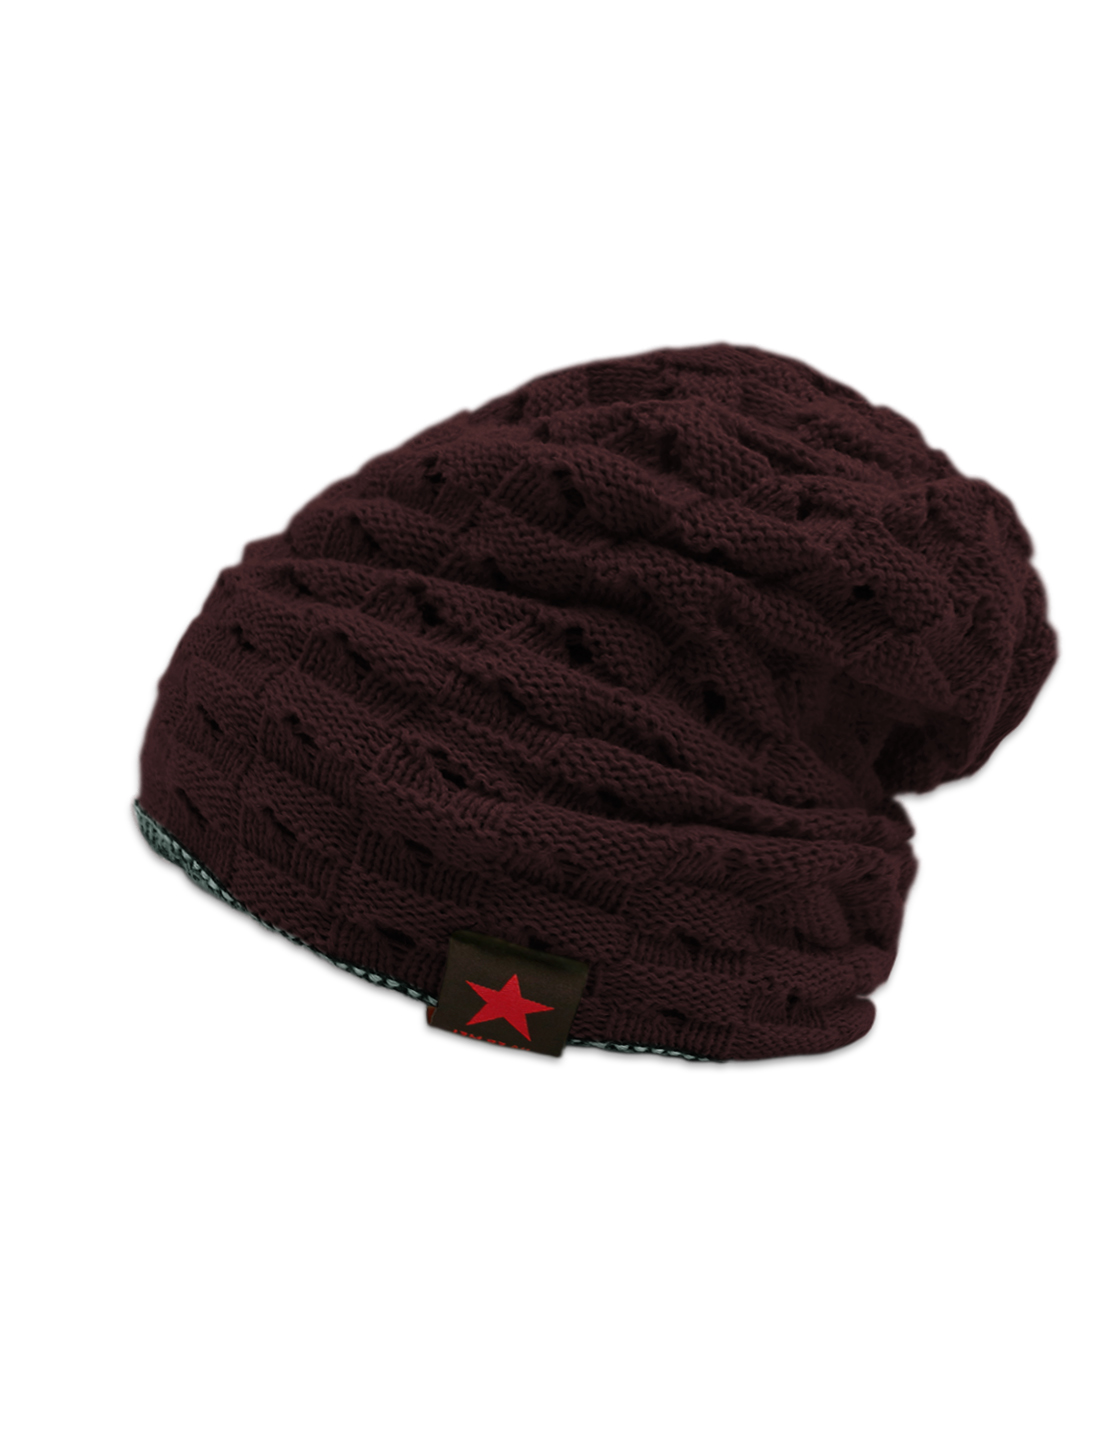 Unisex Hollow Out Design Reversible Knitted Beanie Hat Red